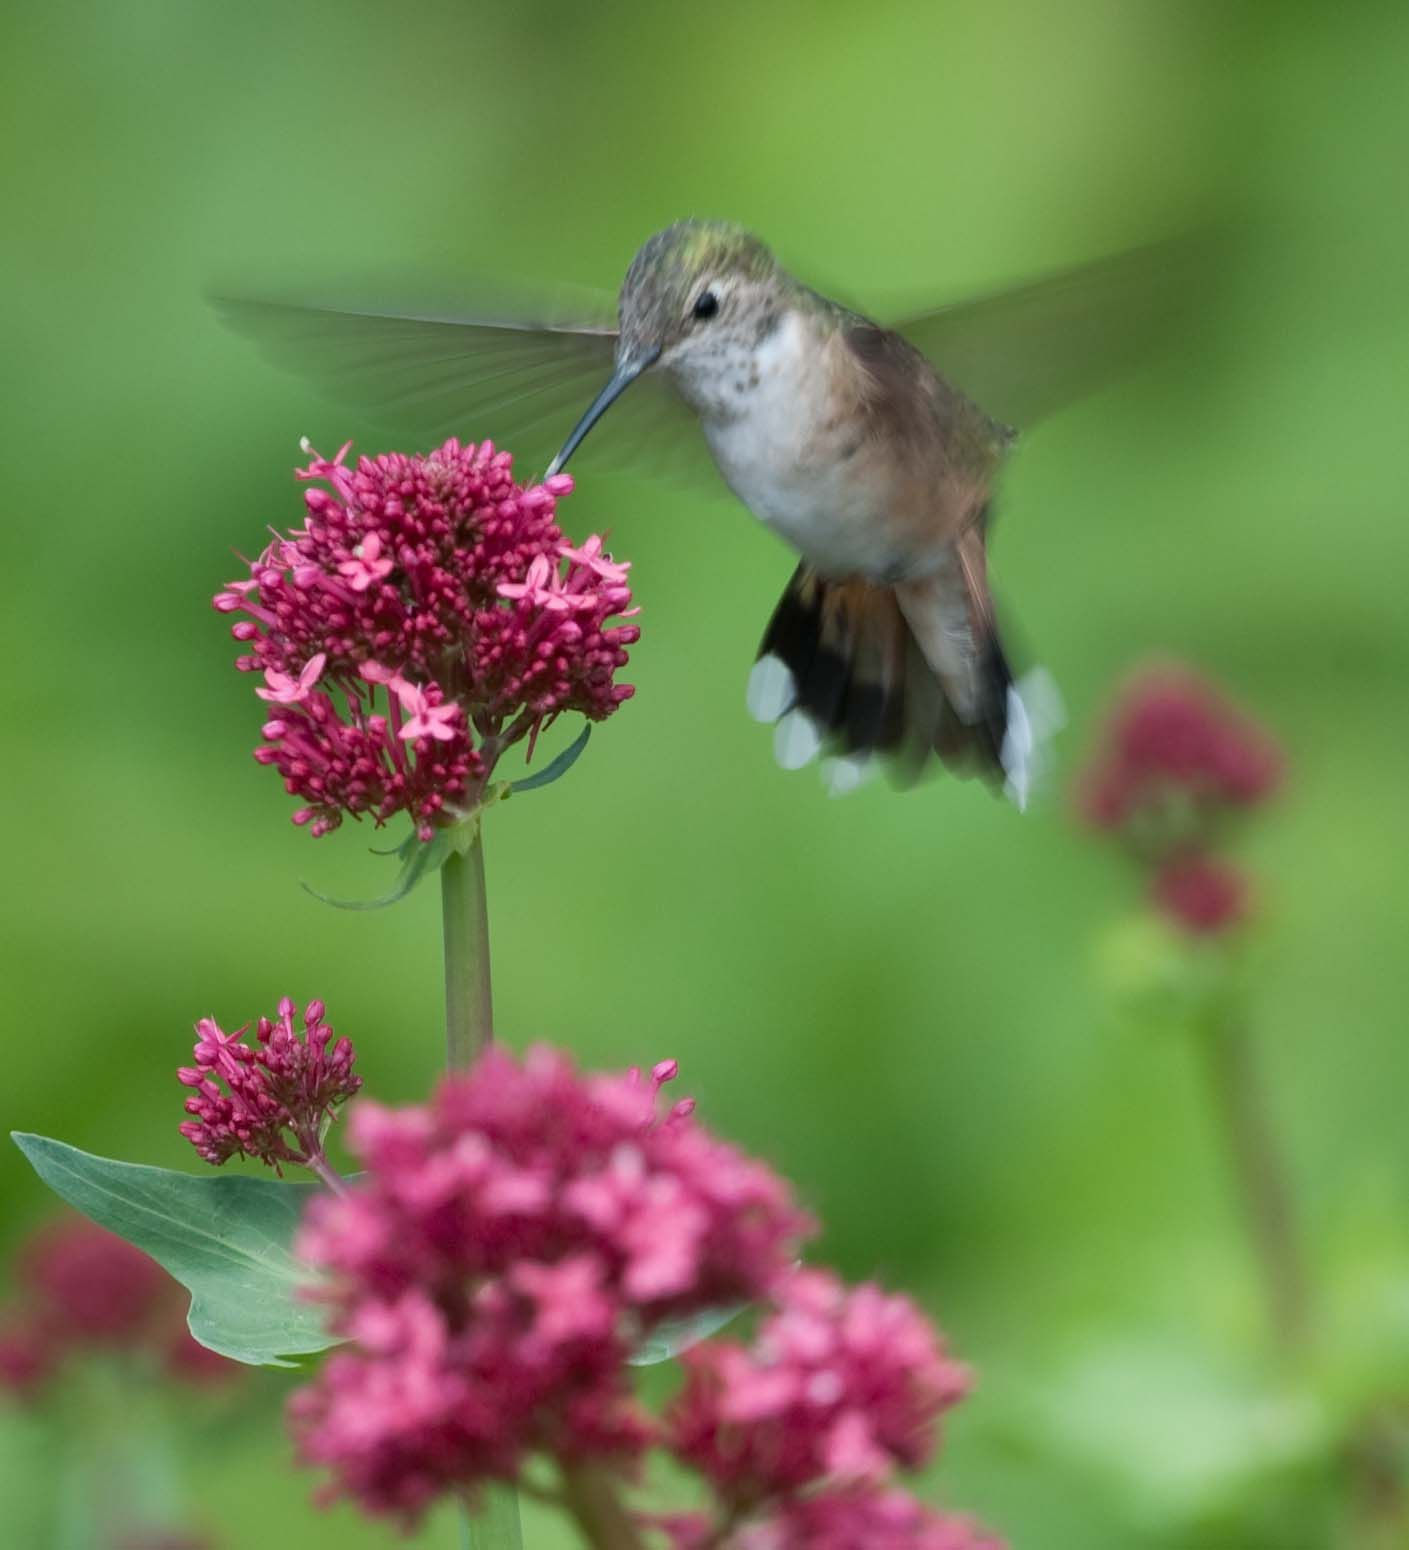 Attracting Hummingbirds To The Backyard Garden By Growing Flowers They Love How To Attract Hummingbirds Backyard Garden Hummingbird Flowers